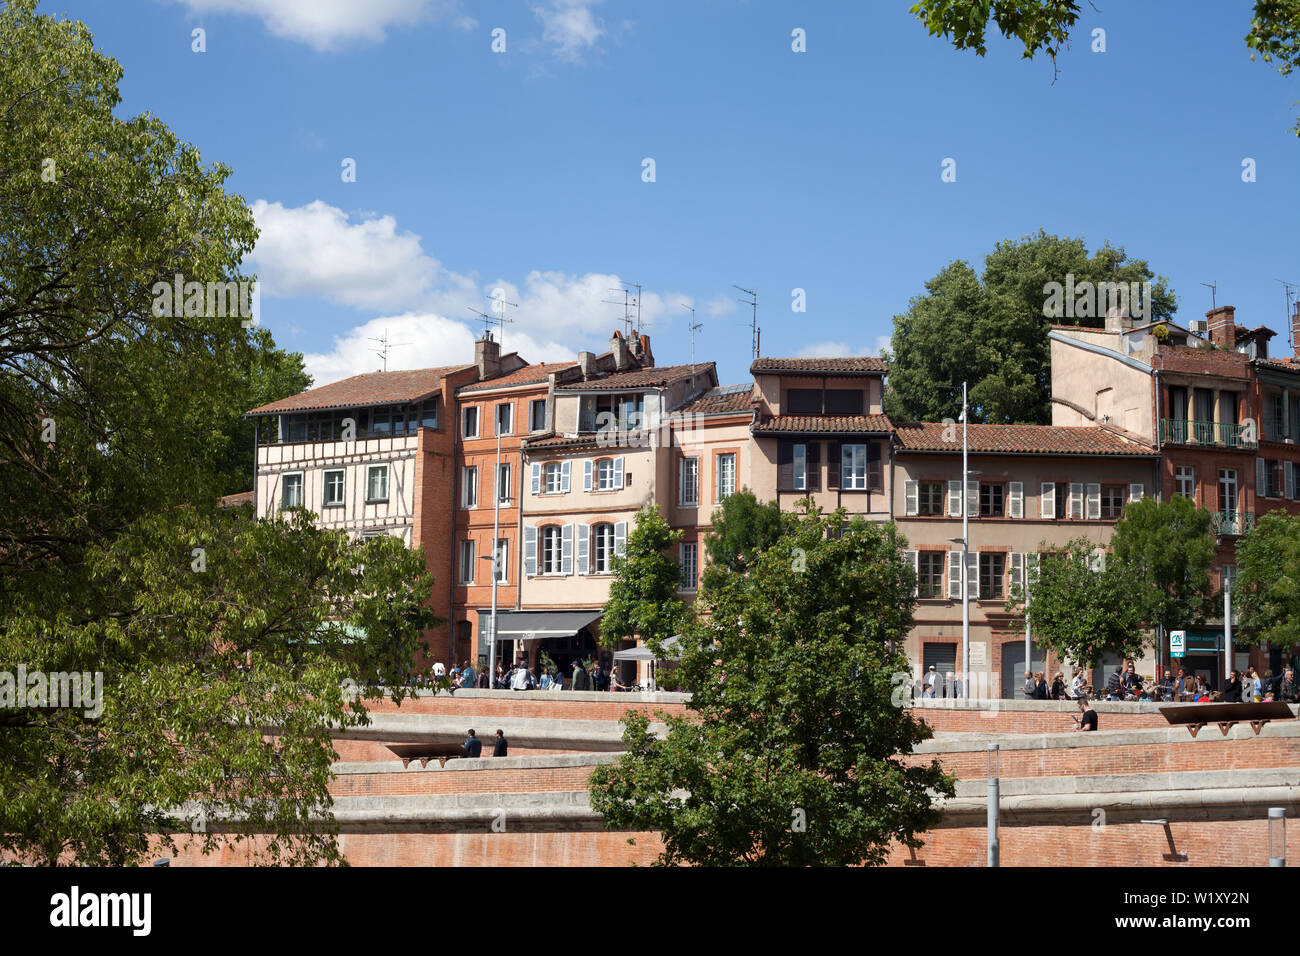 Attractive old buildings dating from the 16th to the 19th century, Place de la Daurade, Toulouse, Haute-Garonne, Occitanie, France - Stock Image